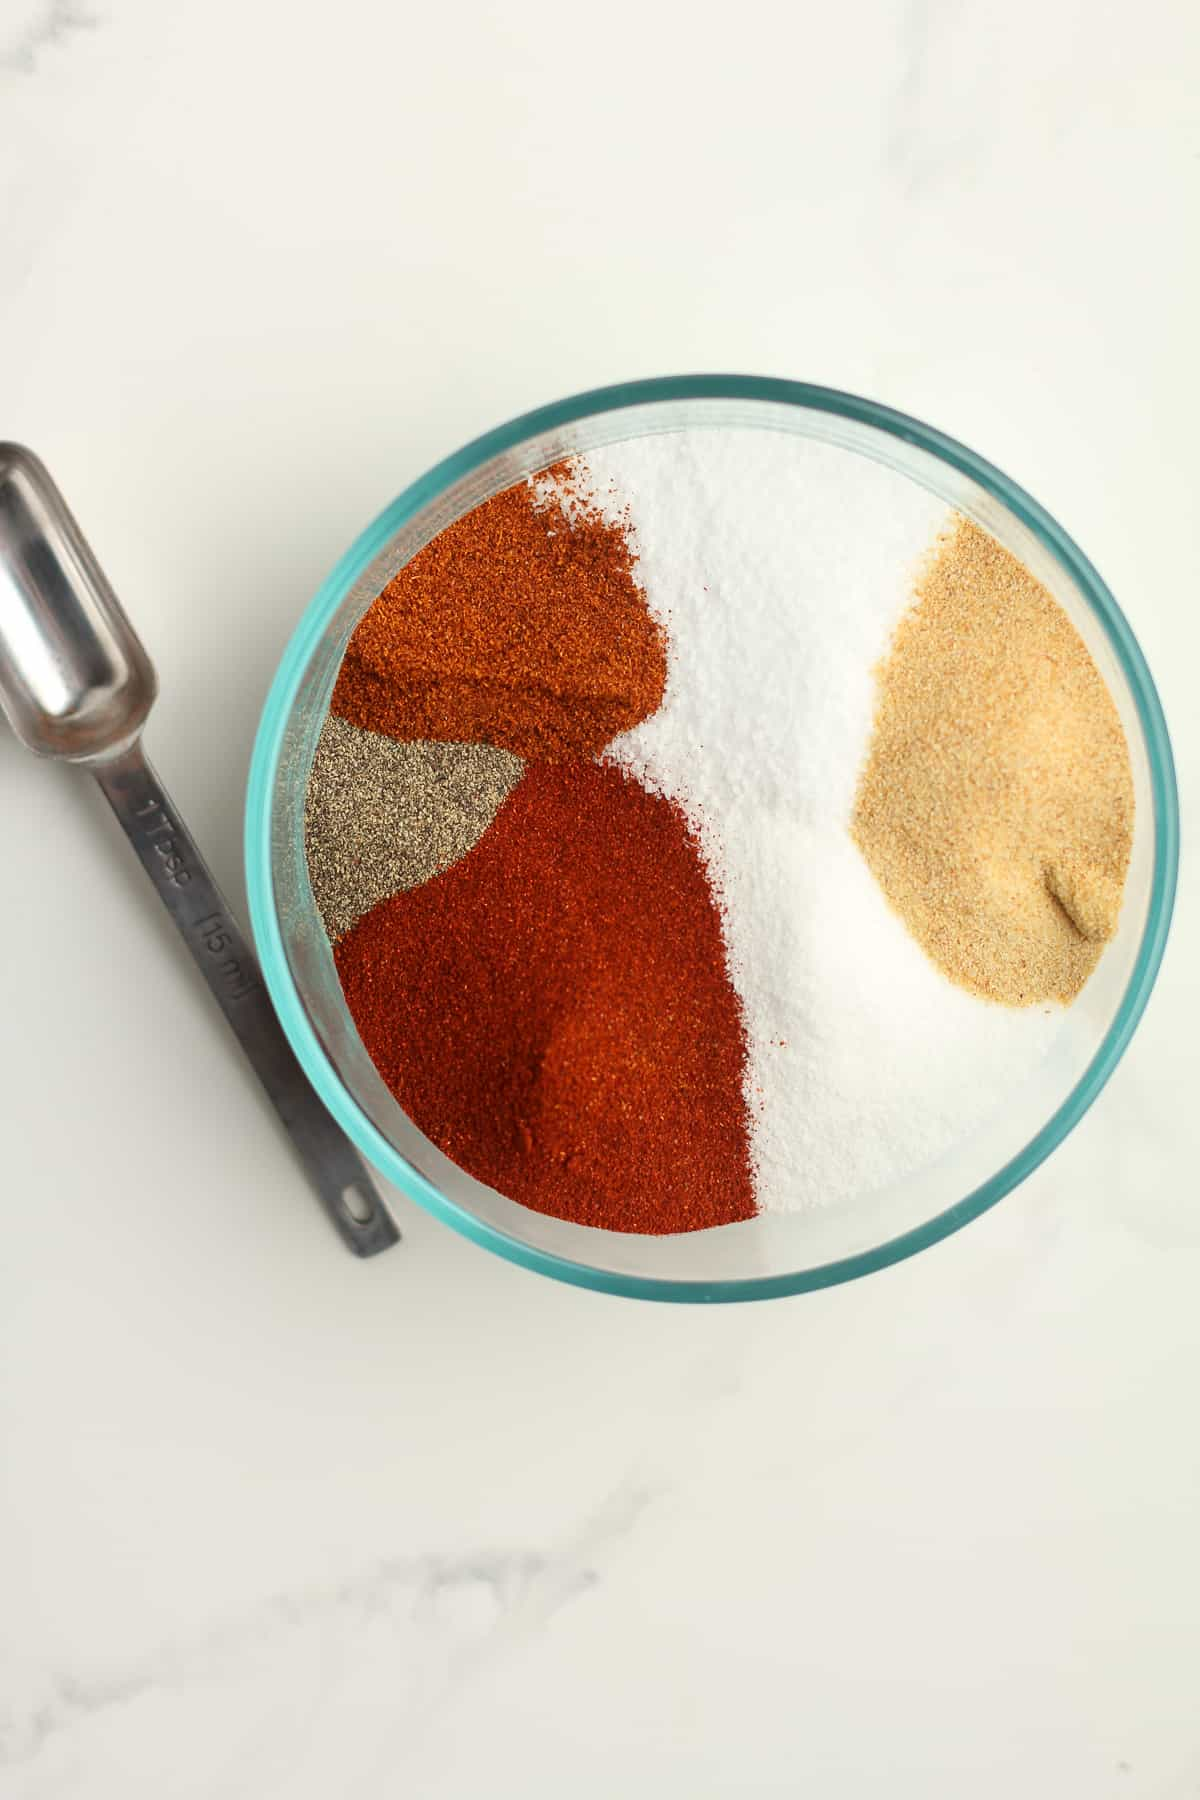 A bowl of the spice rub.